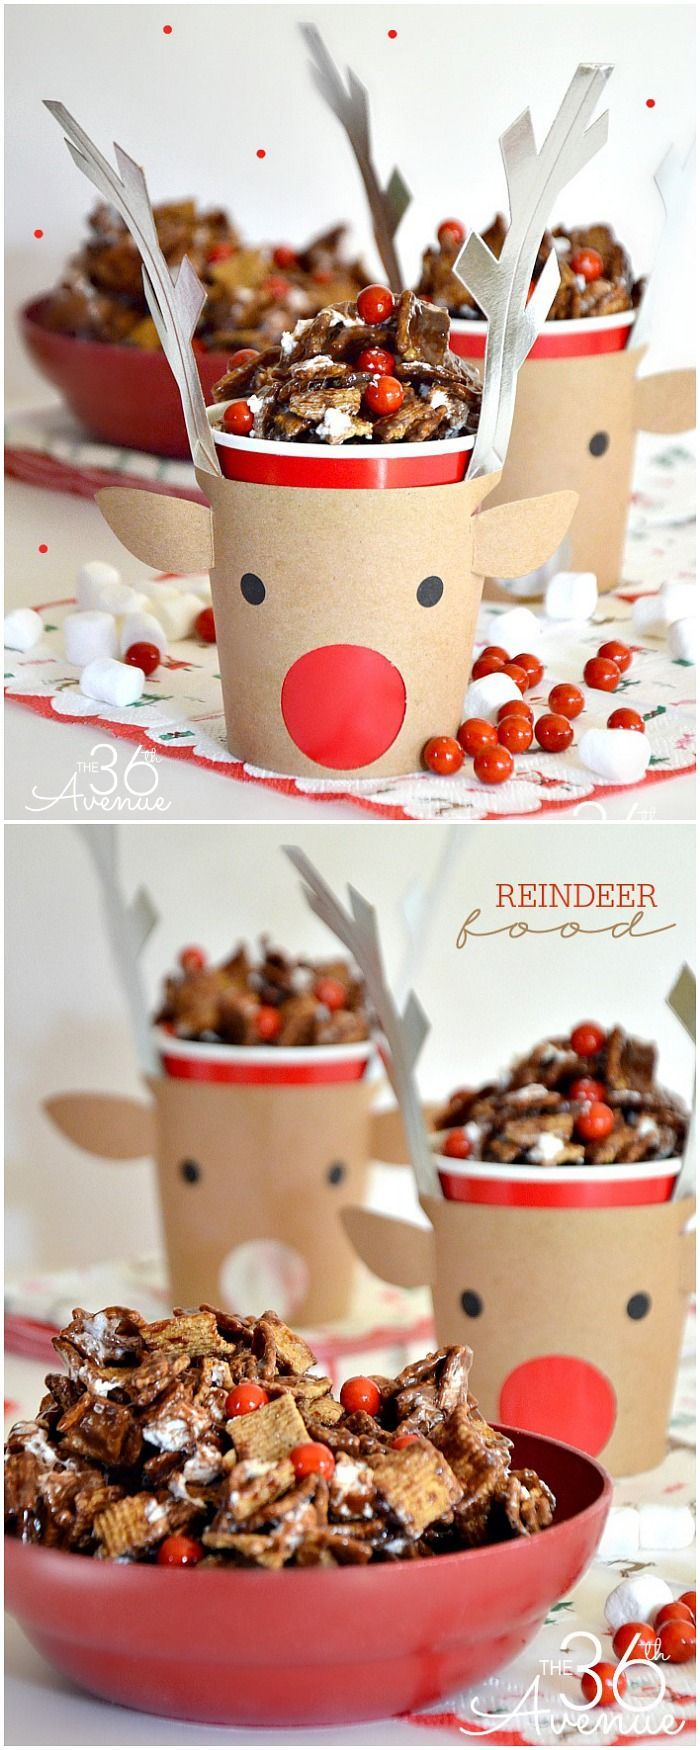 Reindeer Food Christmas Recipe at the36thavenue.com SO DARN GOOD!